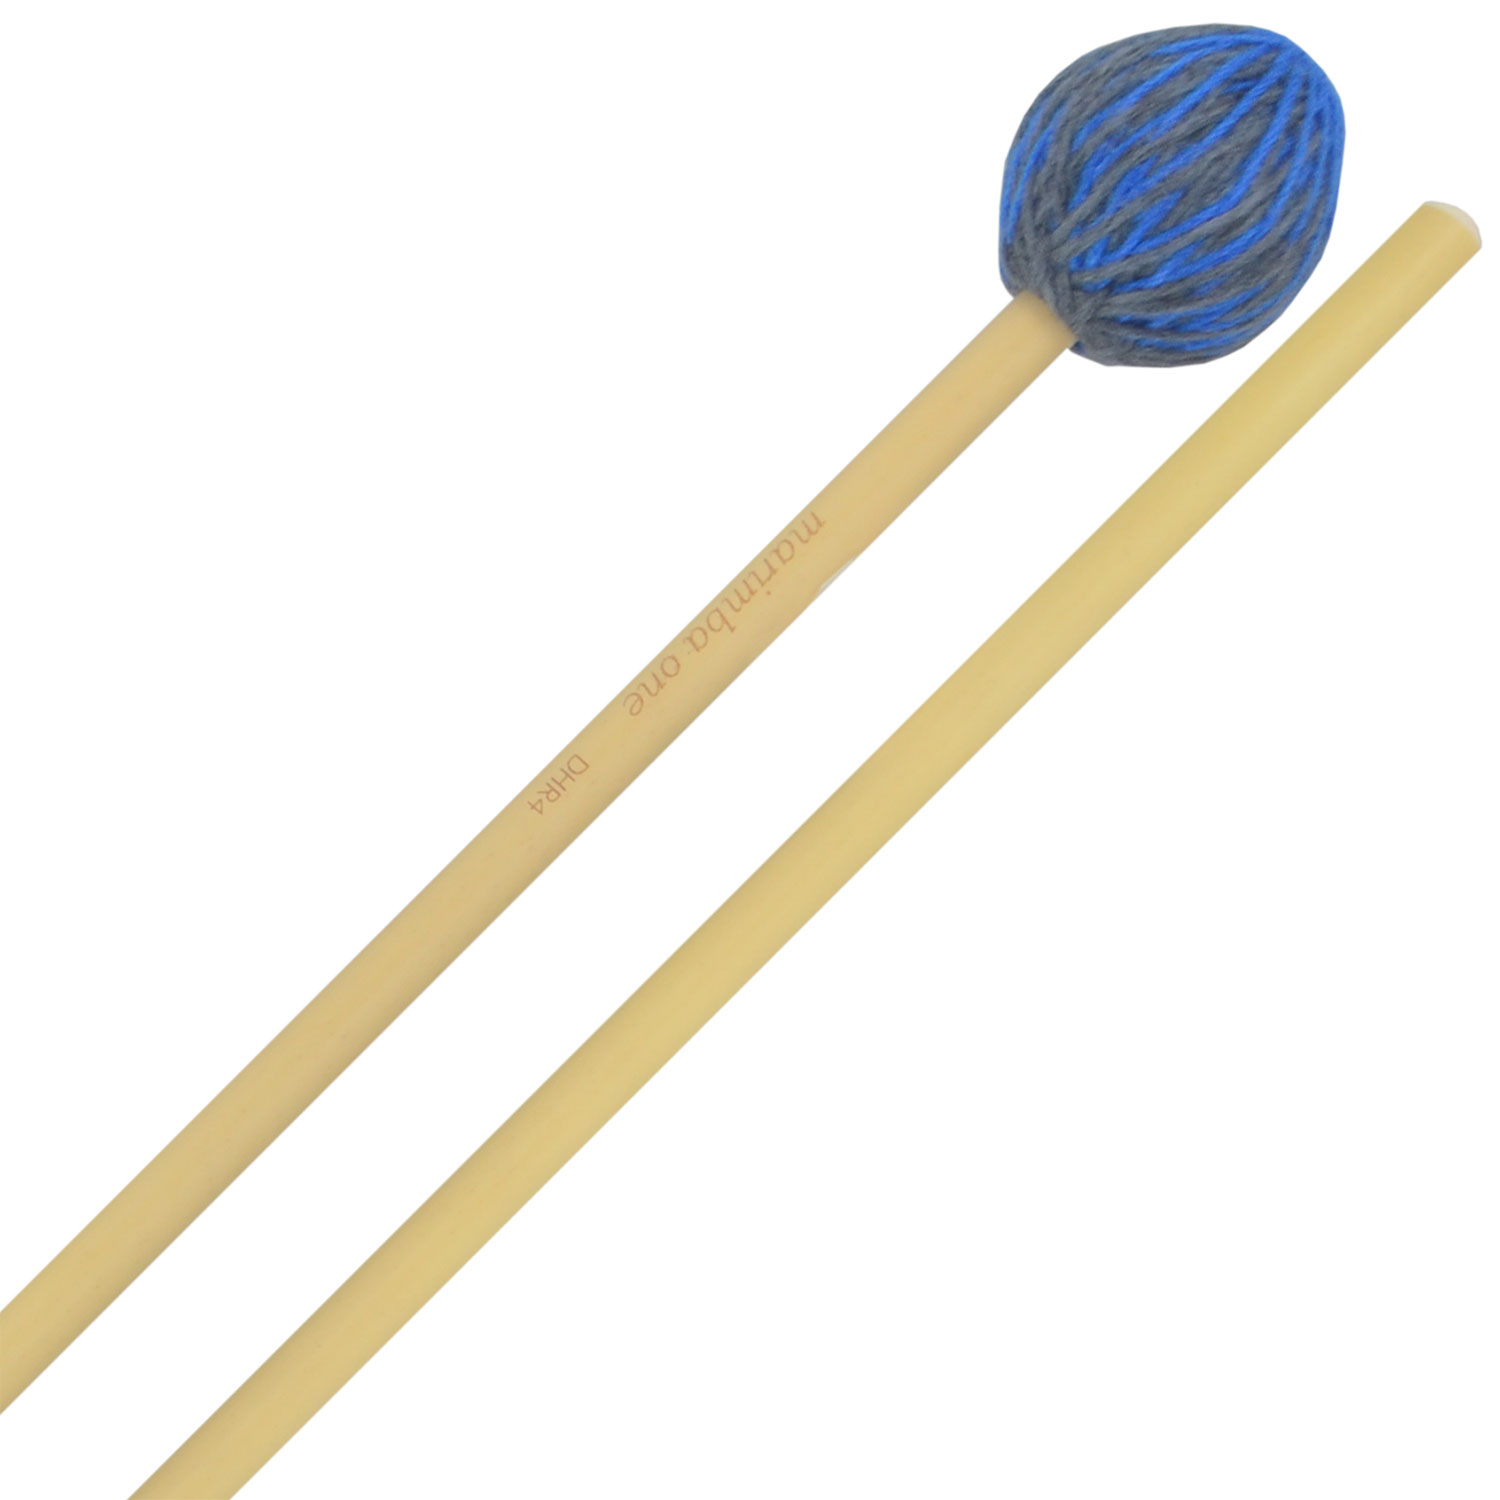 Marimba One Double Helix Medium Marimba Mallets with Rattan Shafts